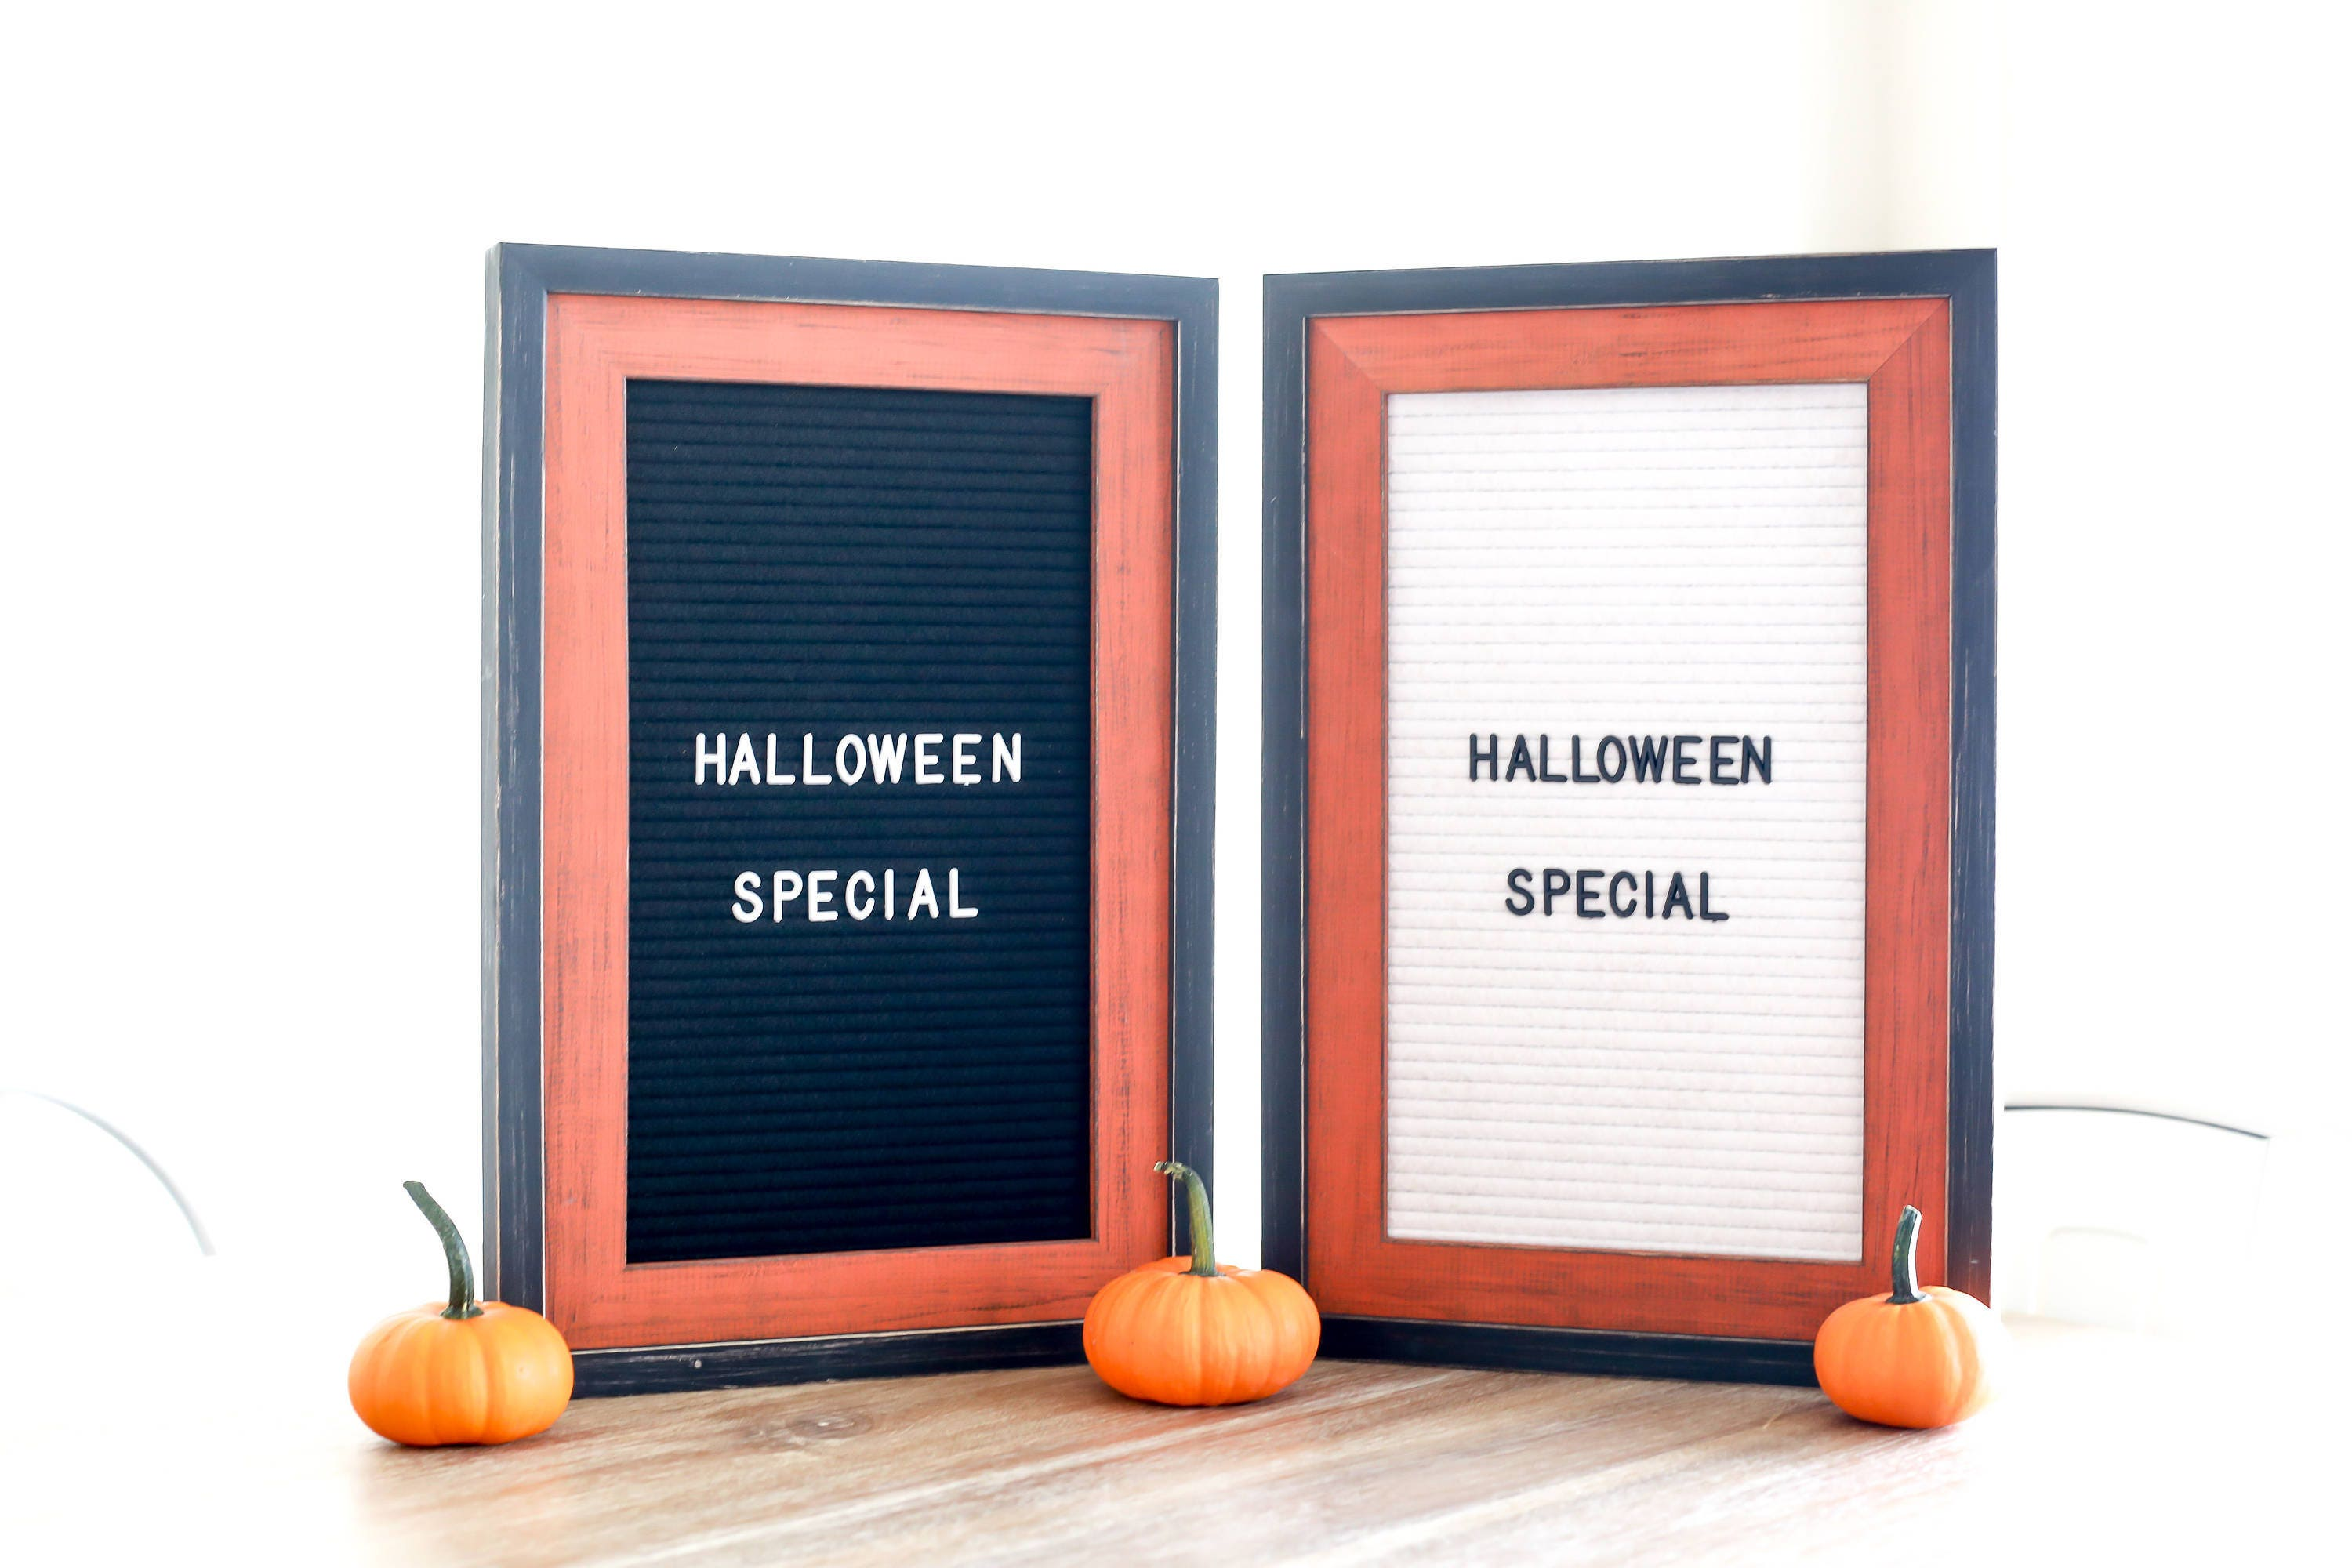 Letter board - 12x18 Black Felt - Halloween Special frame - The ...